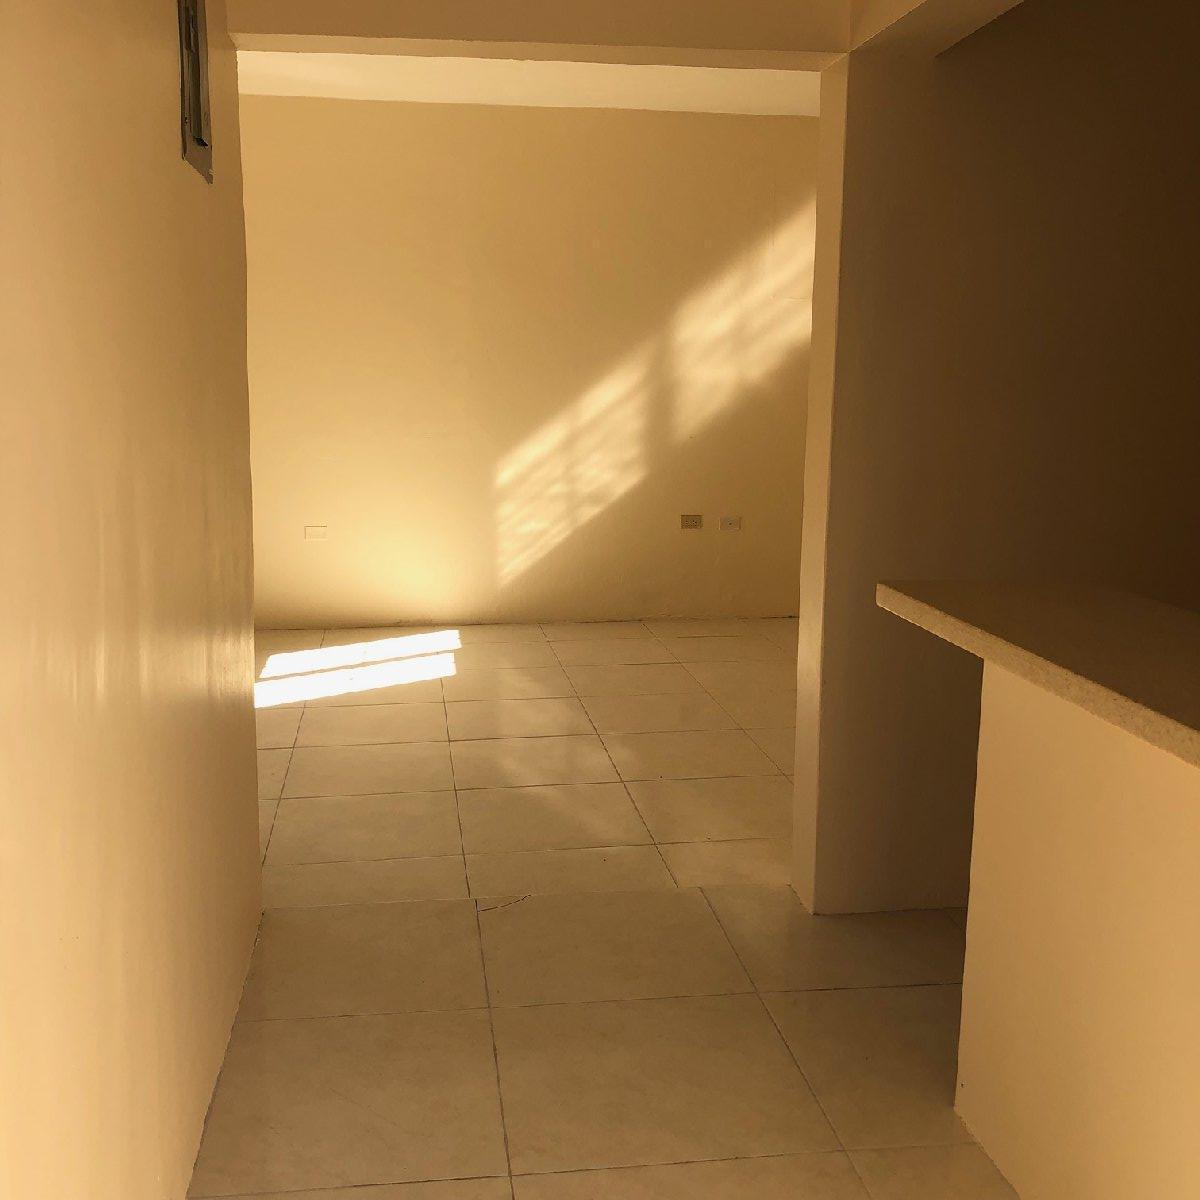 Studio And 1 Bedroom Apartments For Rent: 1 Bedroom Studio For Rent In Meadowbrook Kingston St